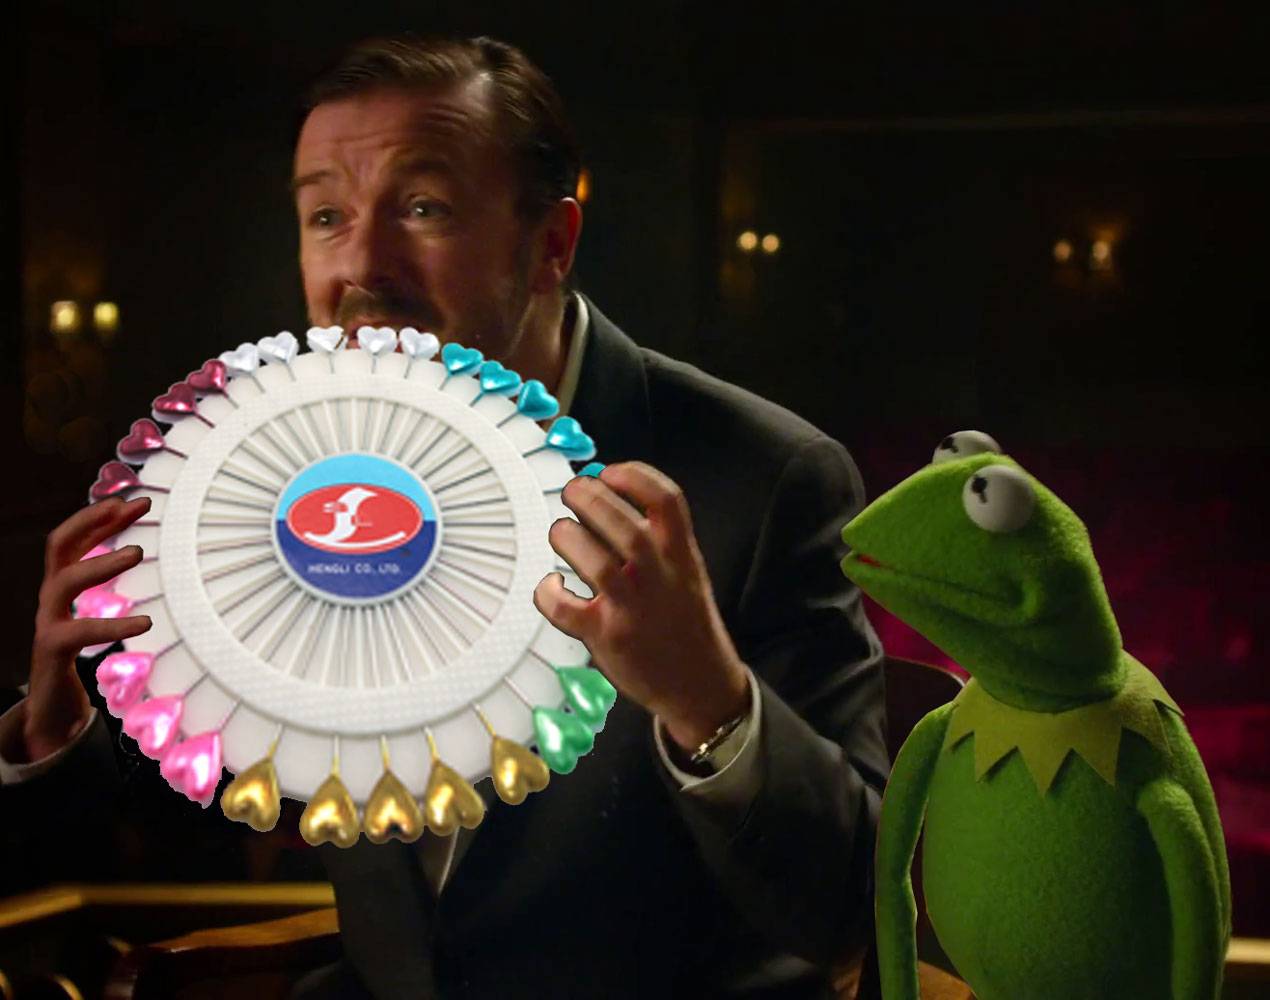 Kermit looks on, thinking, that pin wheel does indeed look delicious.